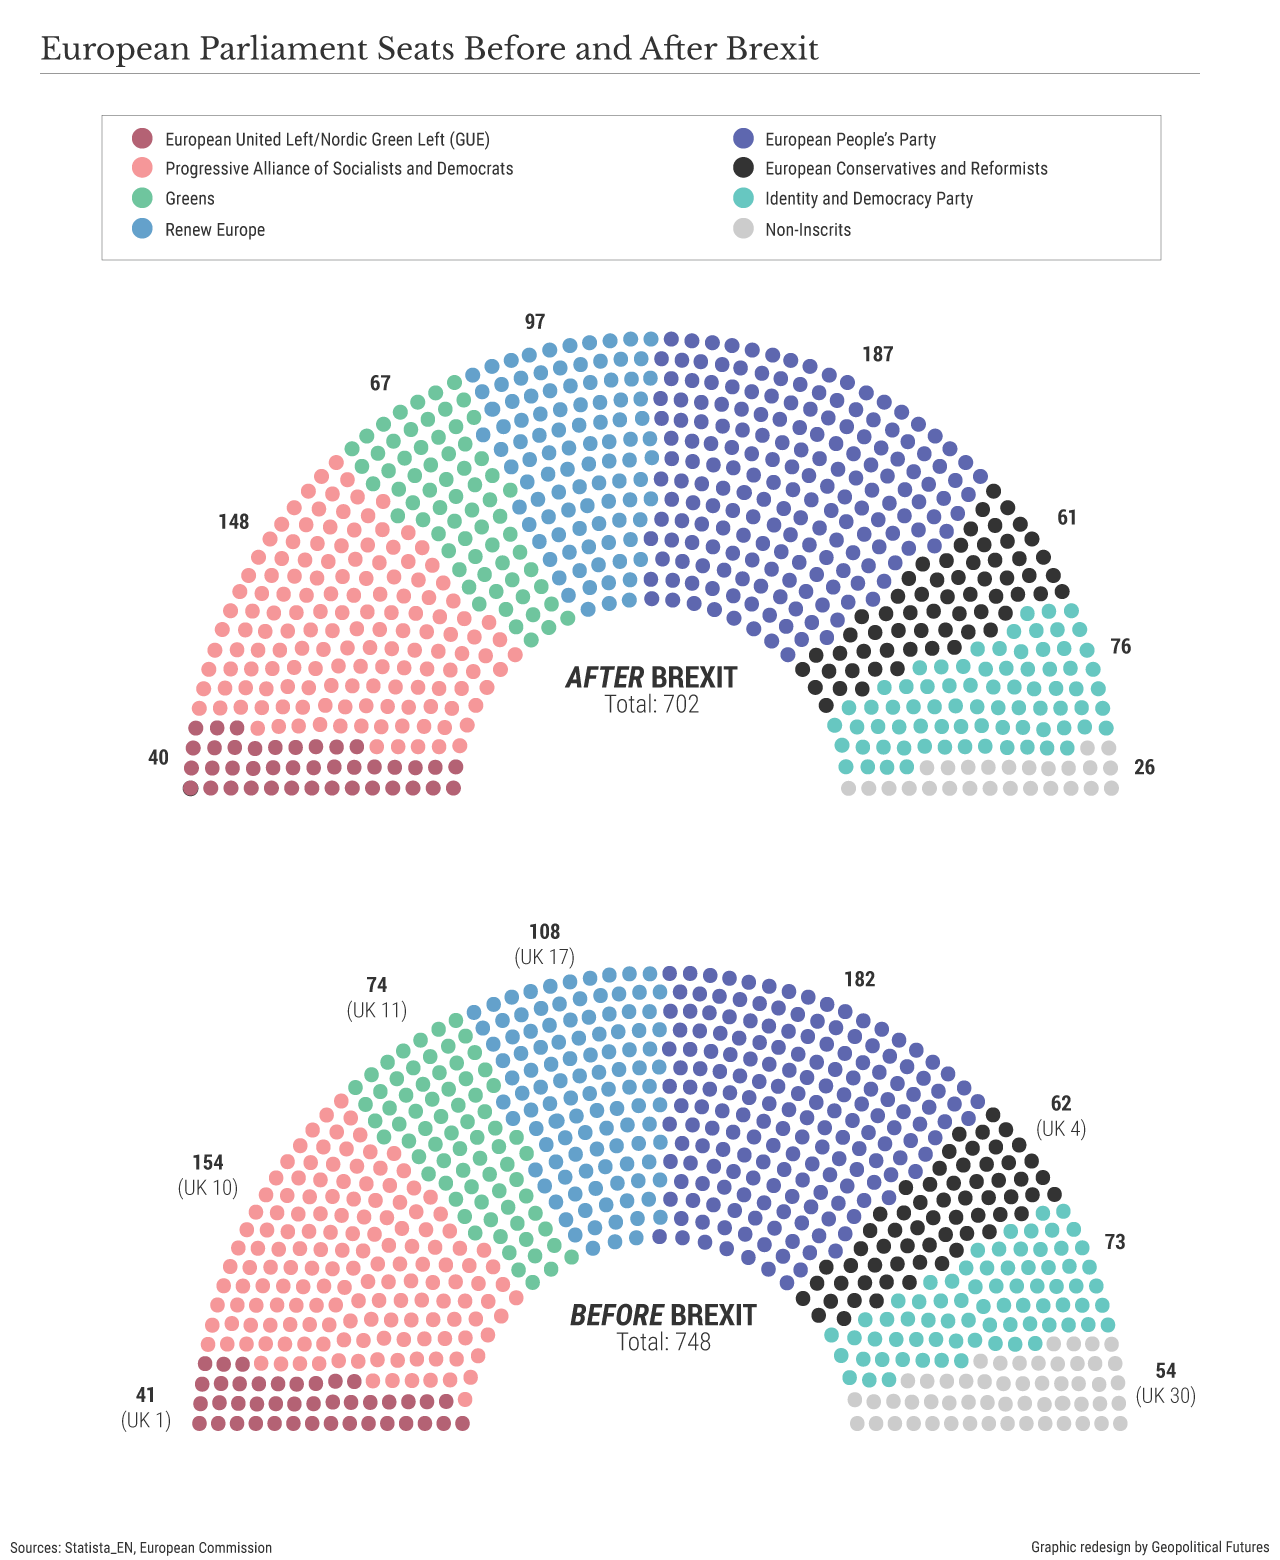 European Parliament Seats Before and After Brexit